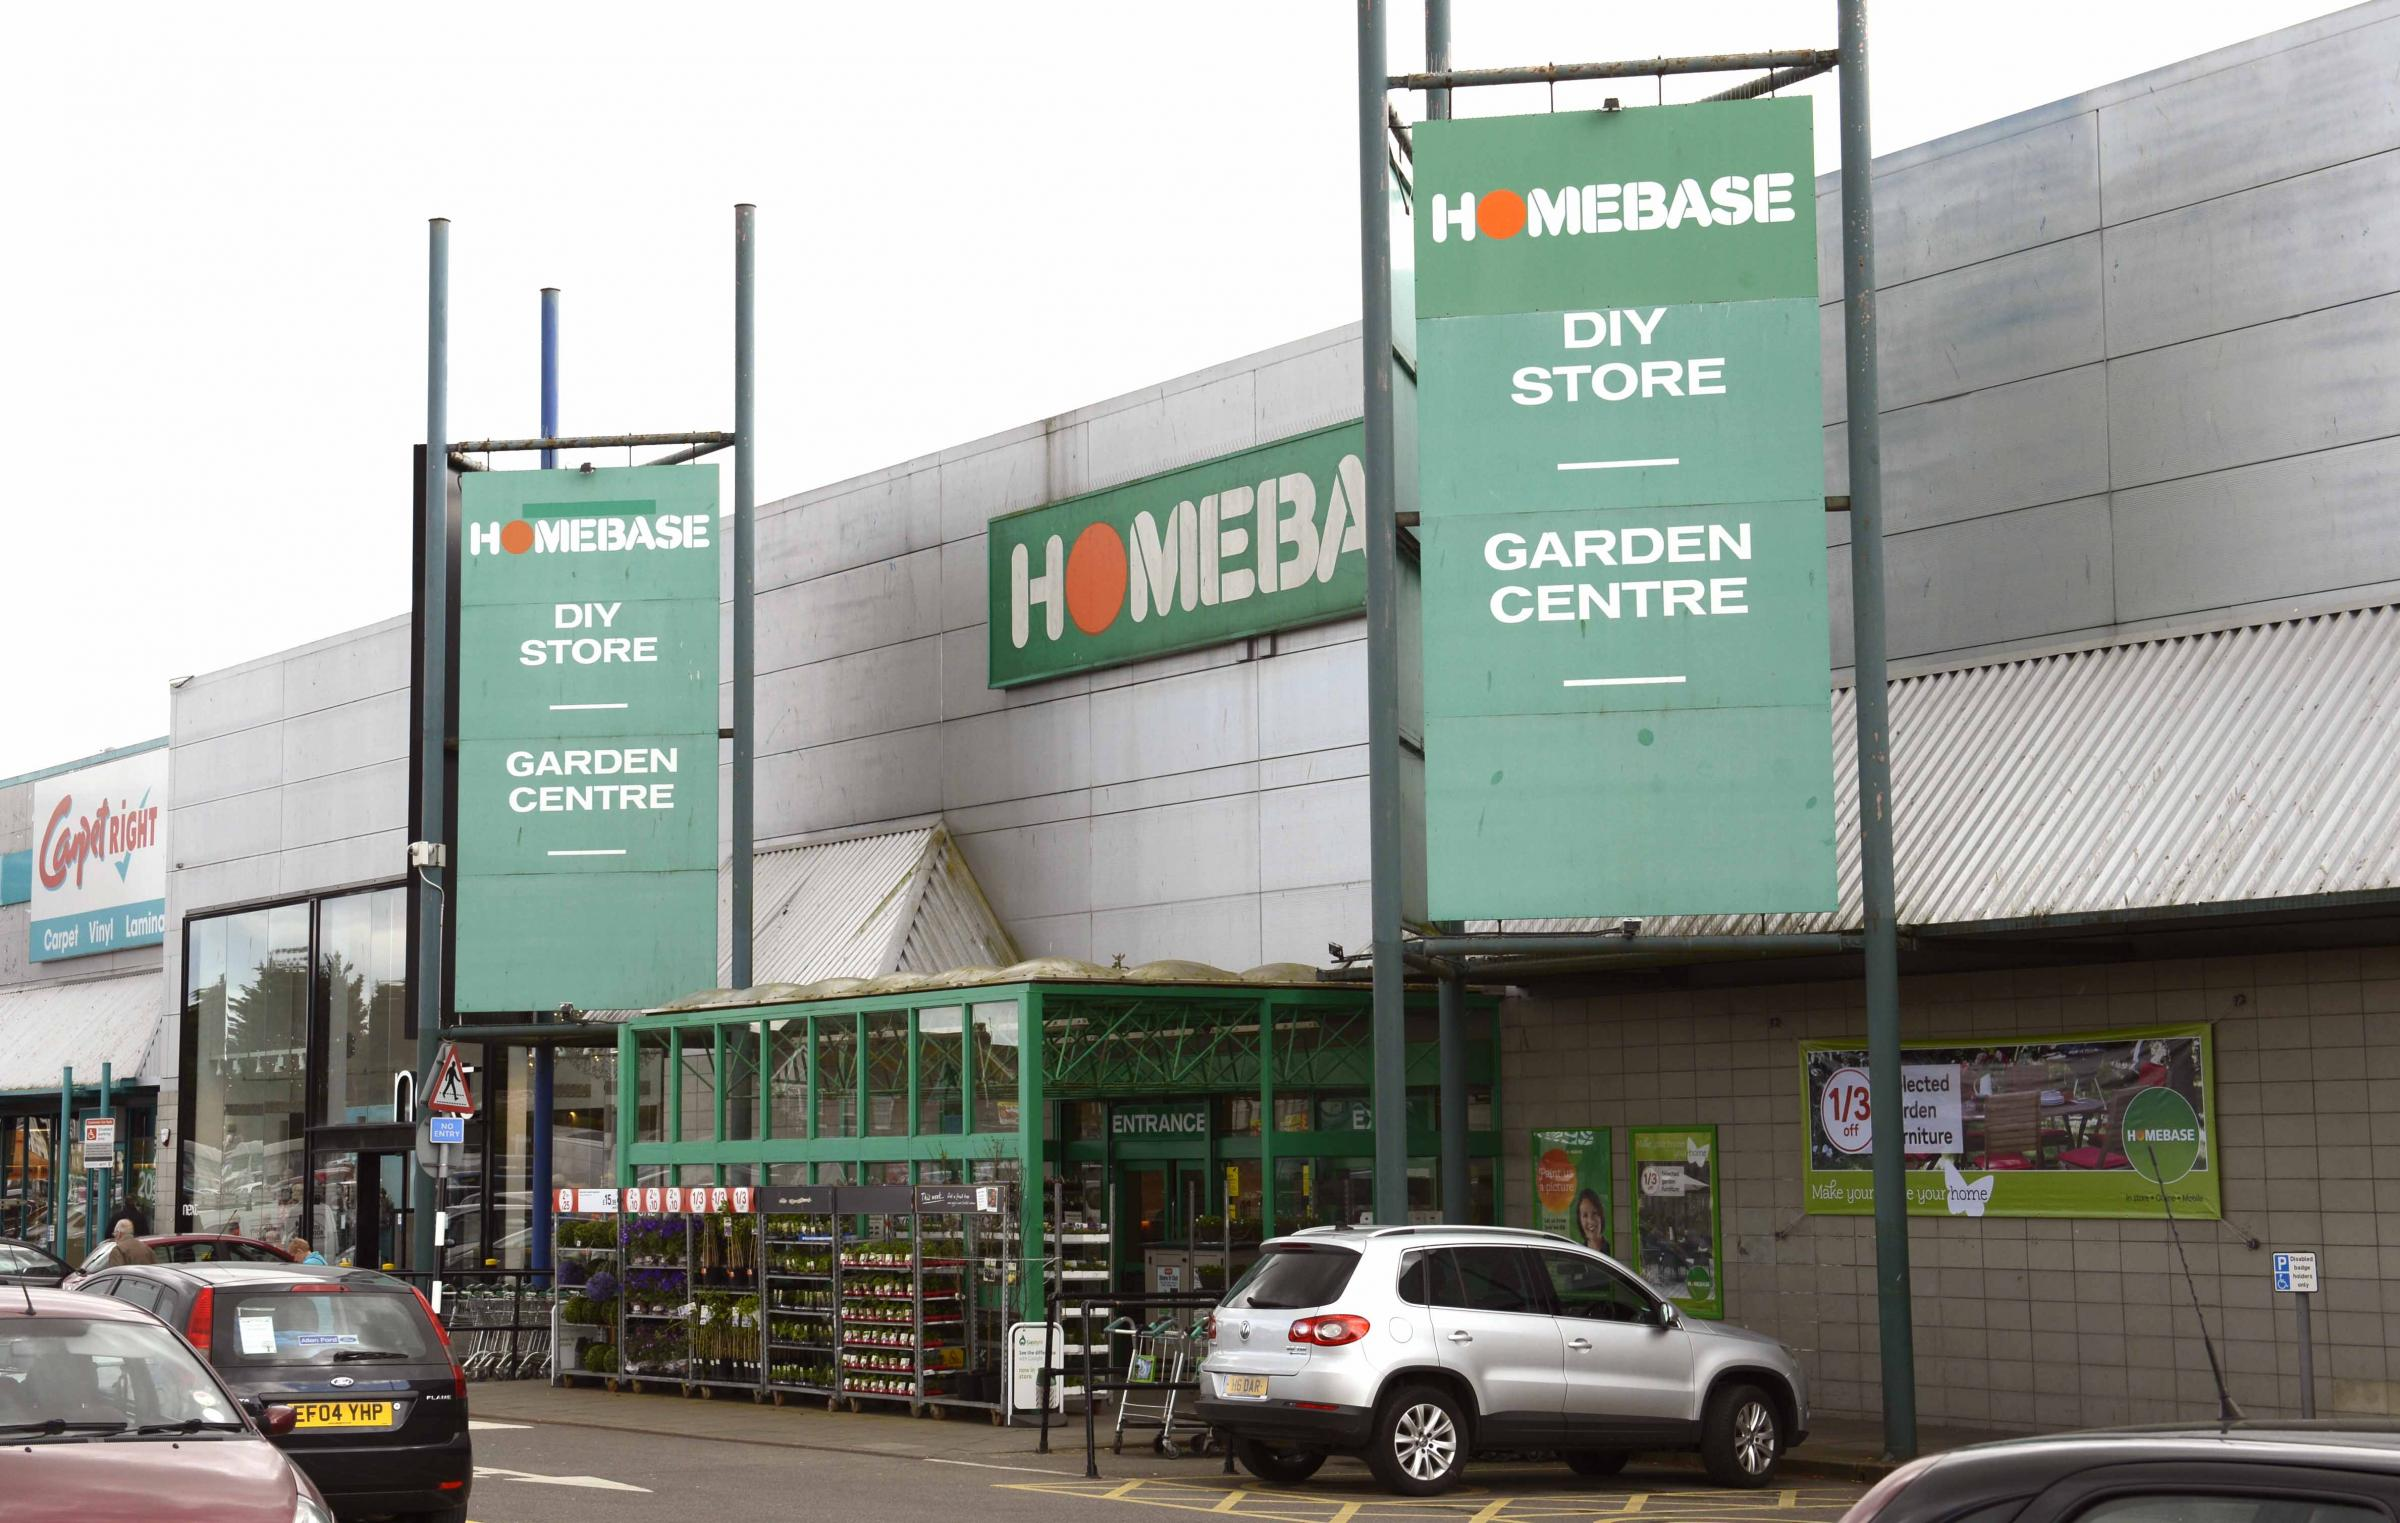 The old Homebase store, now closed